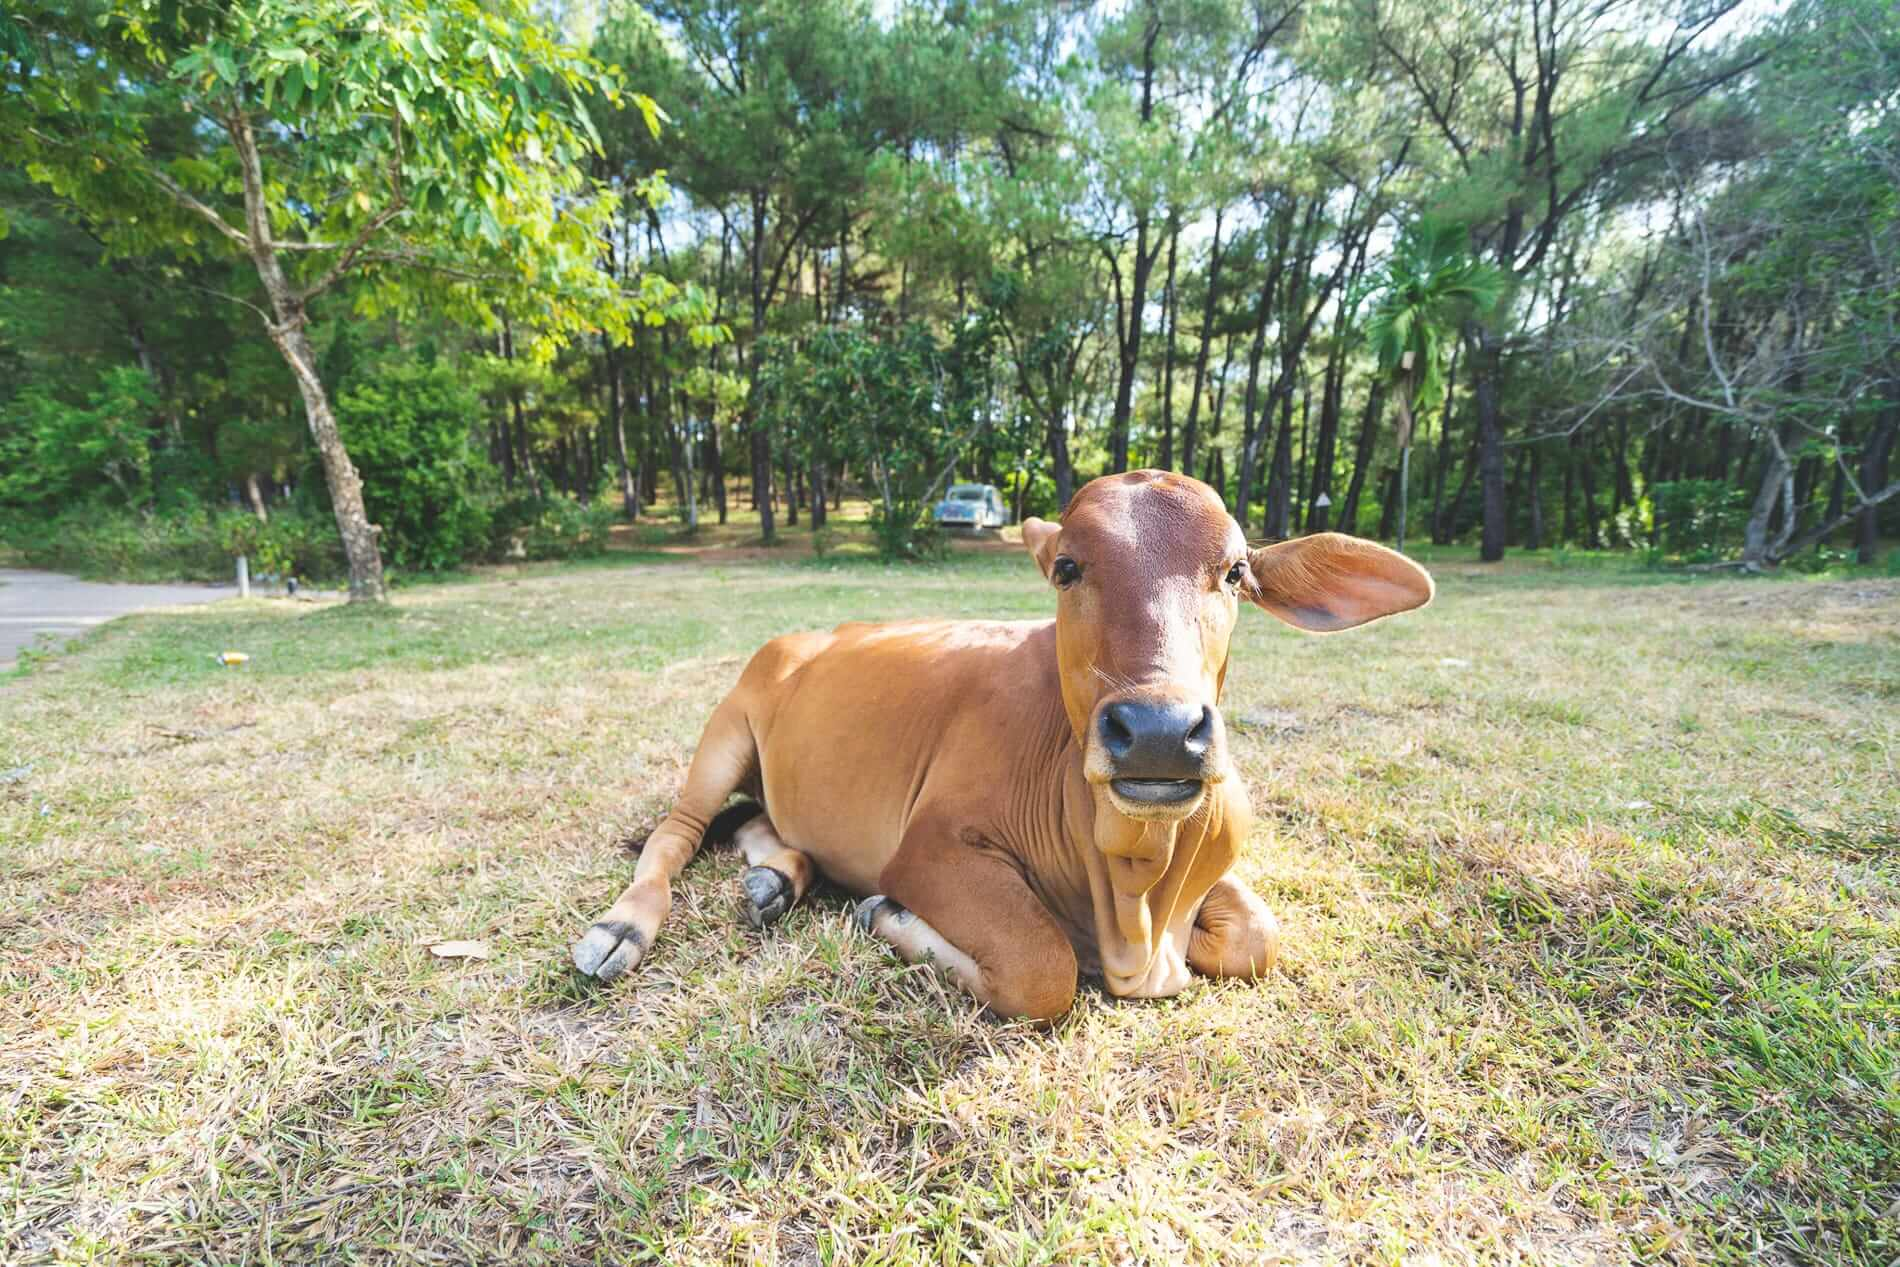 A cow at Hue's Abandoned Water Park